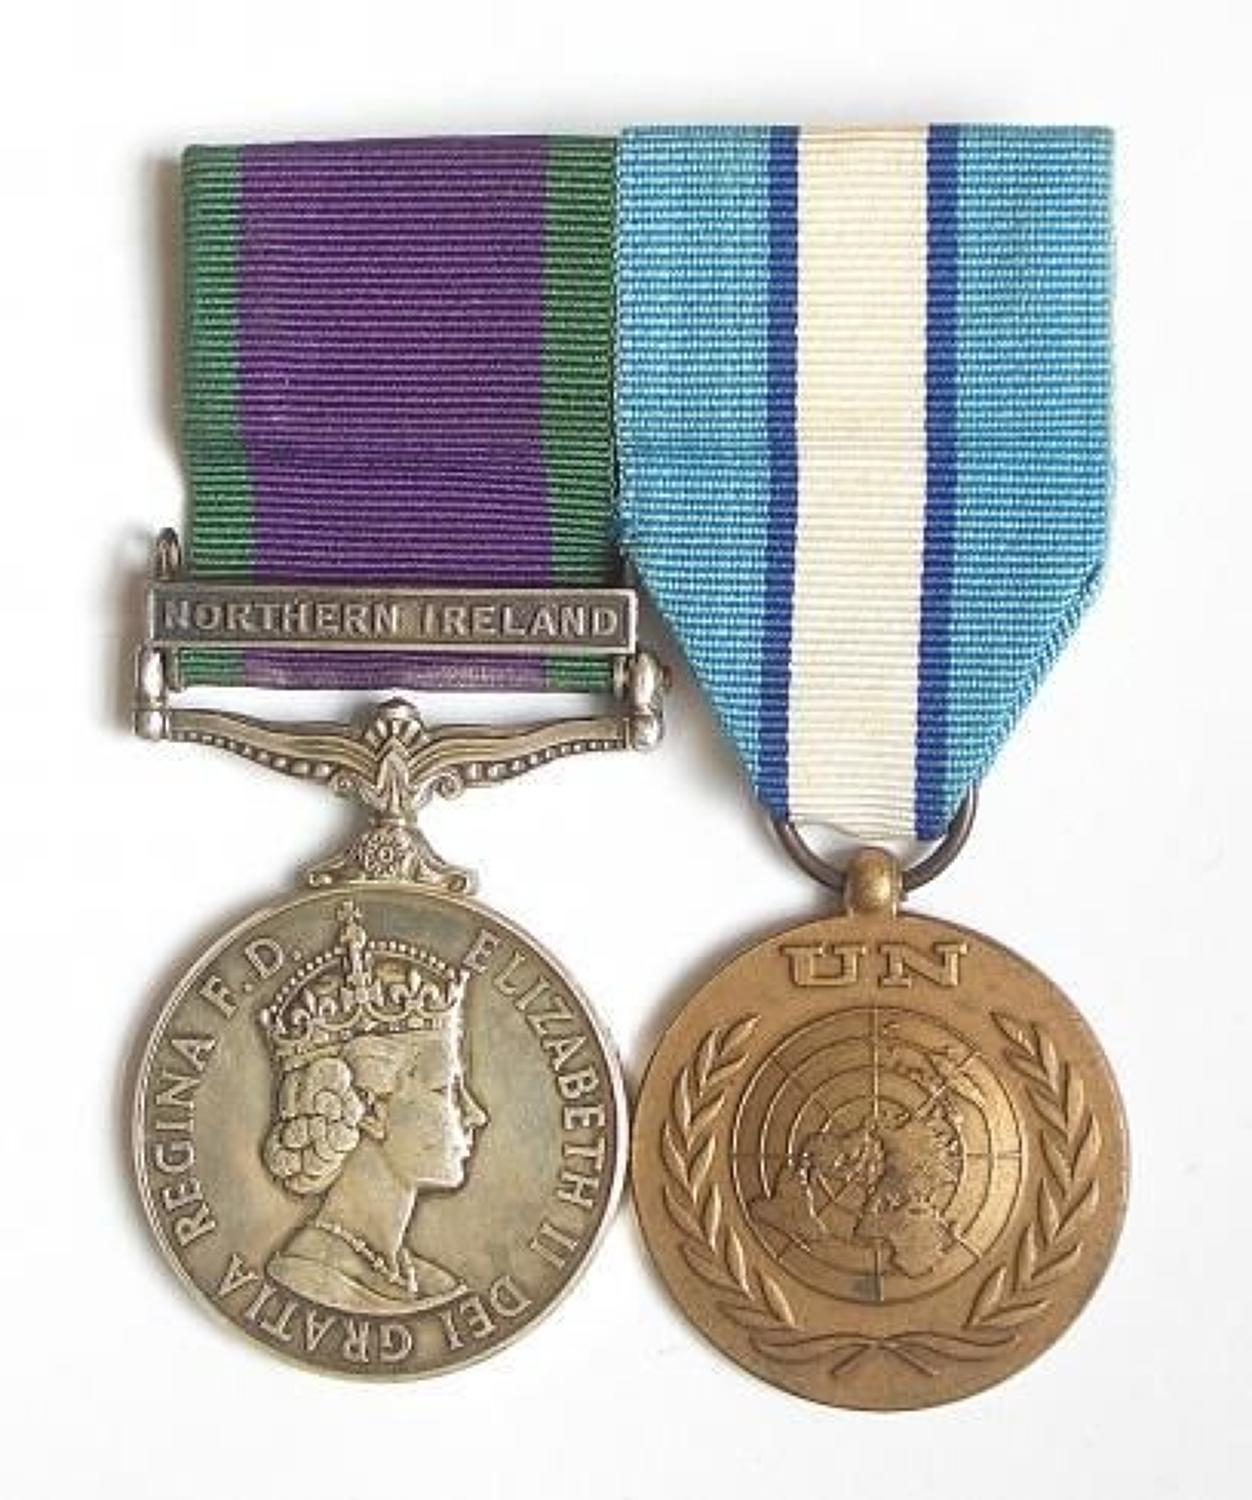 Royal Signals Northern Ireland Cyprus Medal Pair.